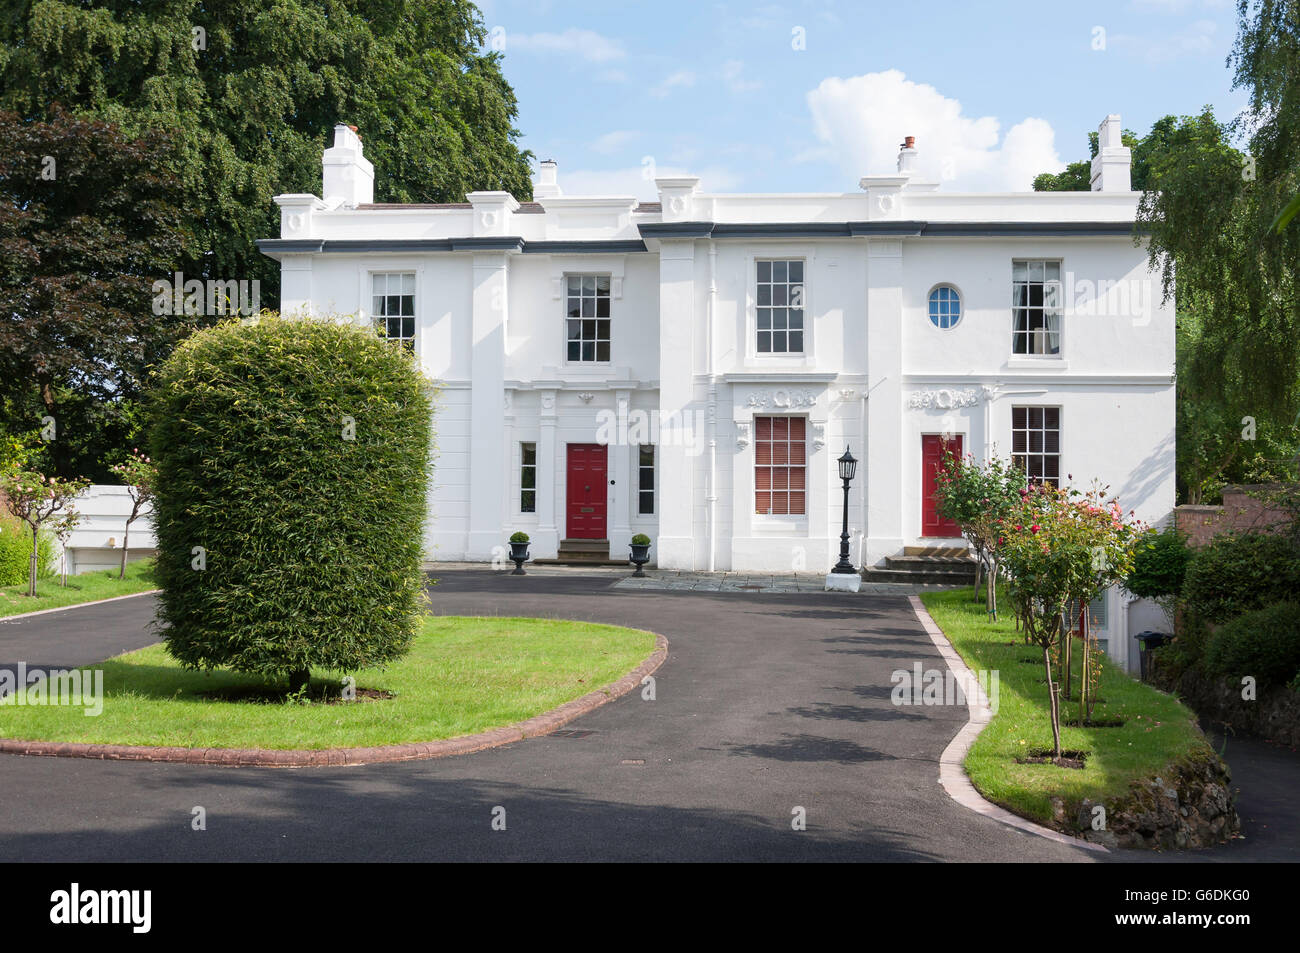 Large detached house, Wellington Road, Edgbaston, Birmingham, West Midlands, England, United Kingdom Stock Photo